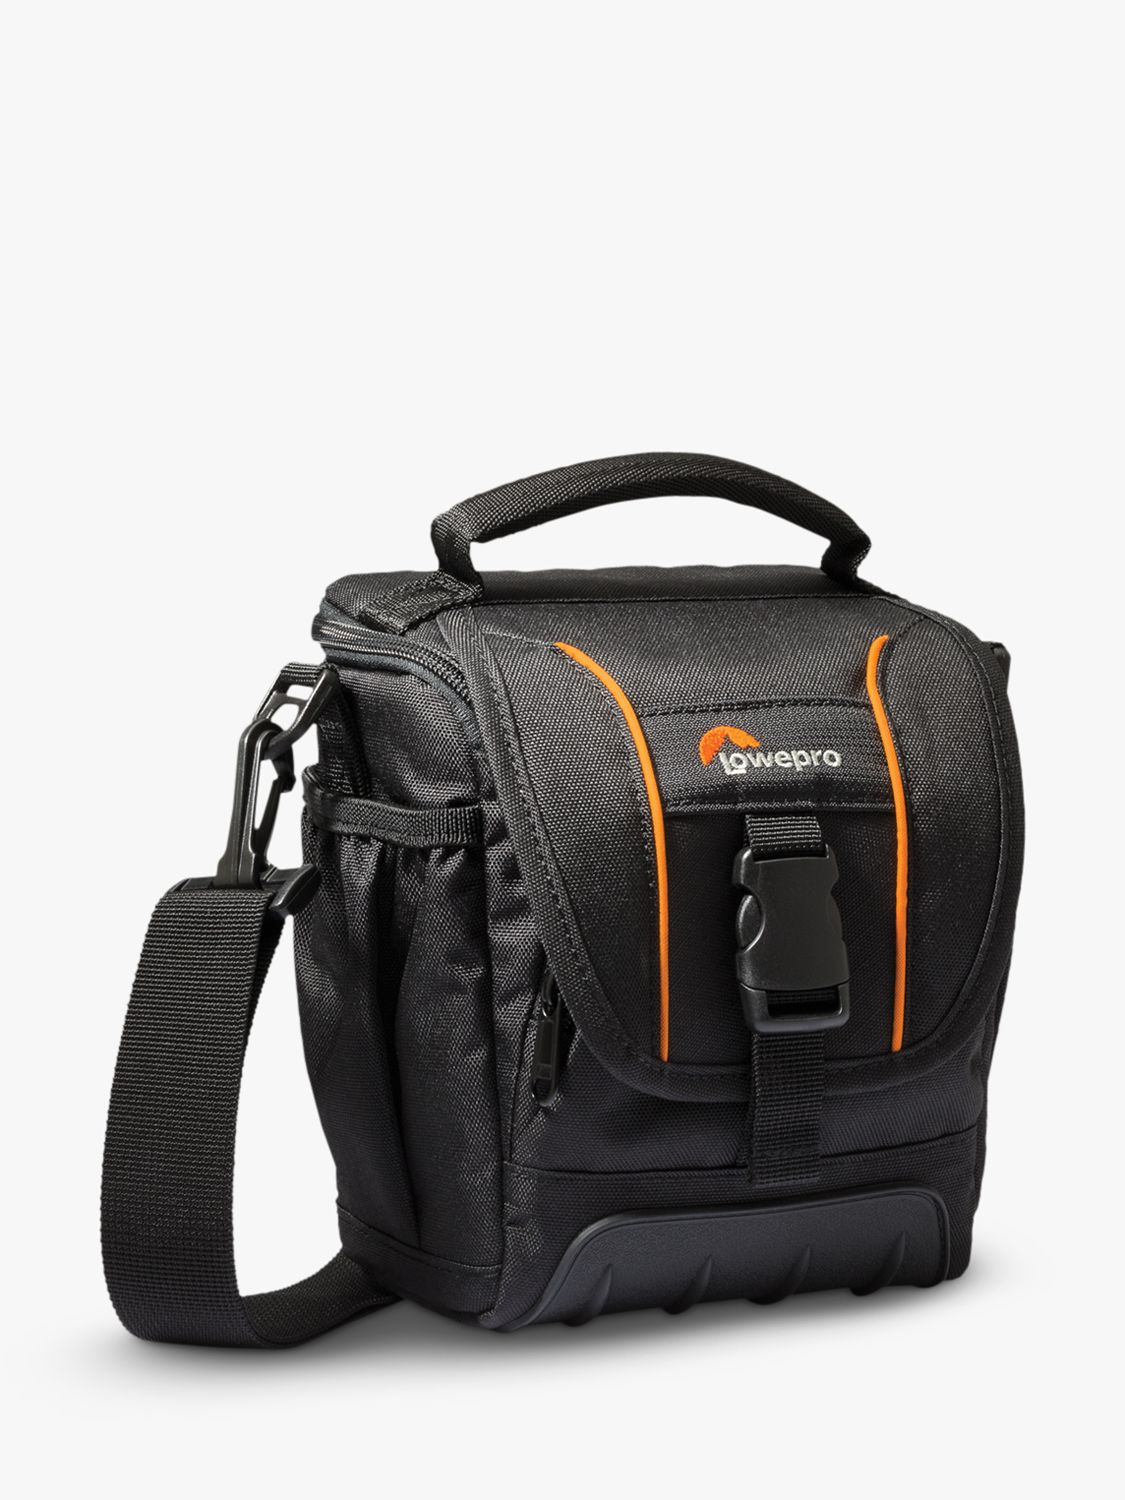 Lowepro Lowepro Adventura SH 120 II Camera Shoulder Bag for DSLRs, Black